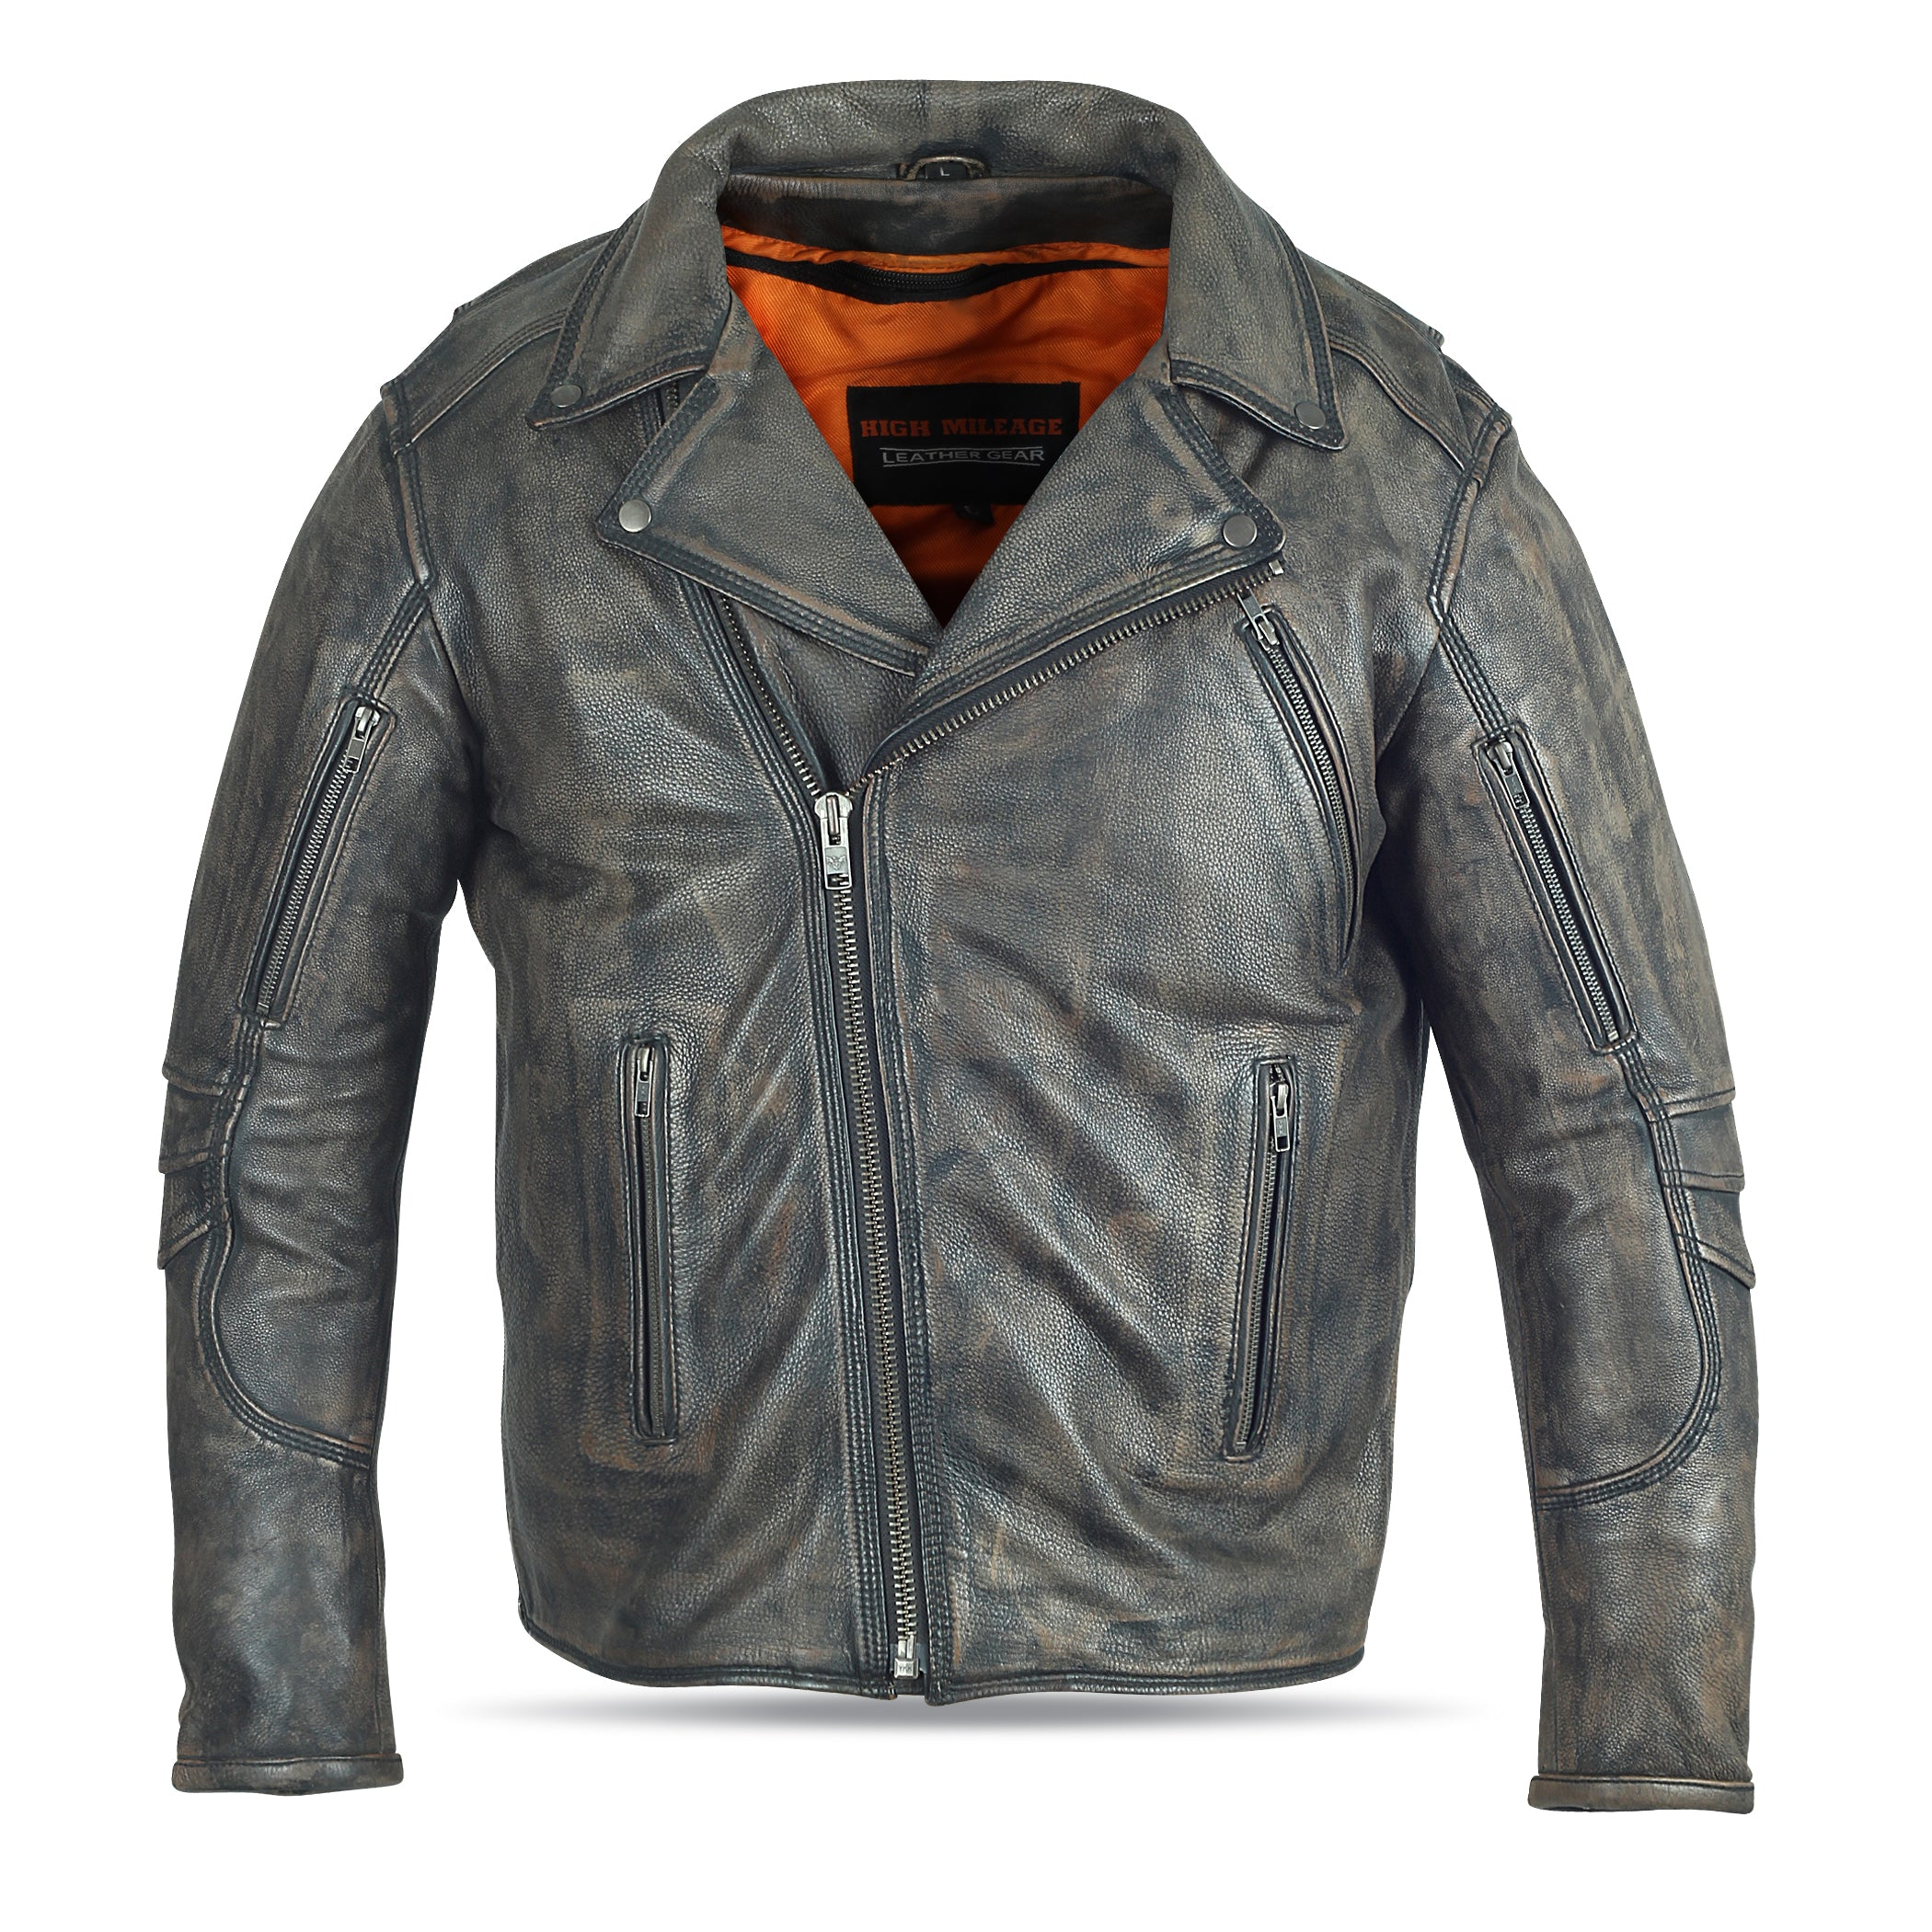 MEN'S POLICE TRIPLE STITCH DISTRESSED BROWN LEATHER JACKET